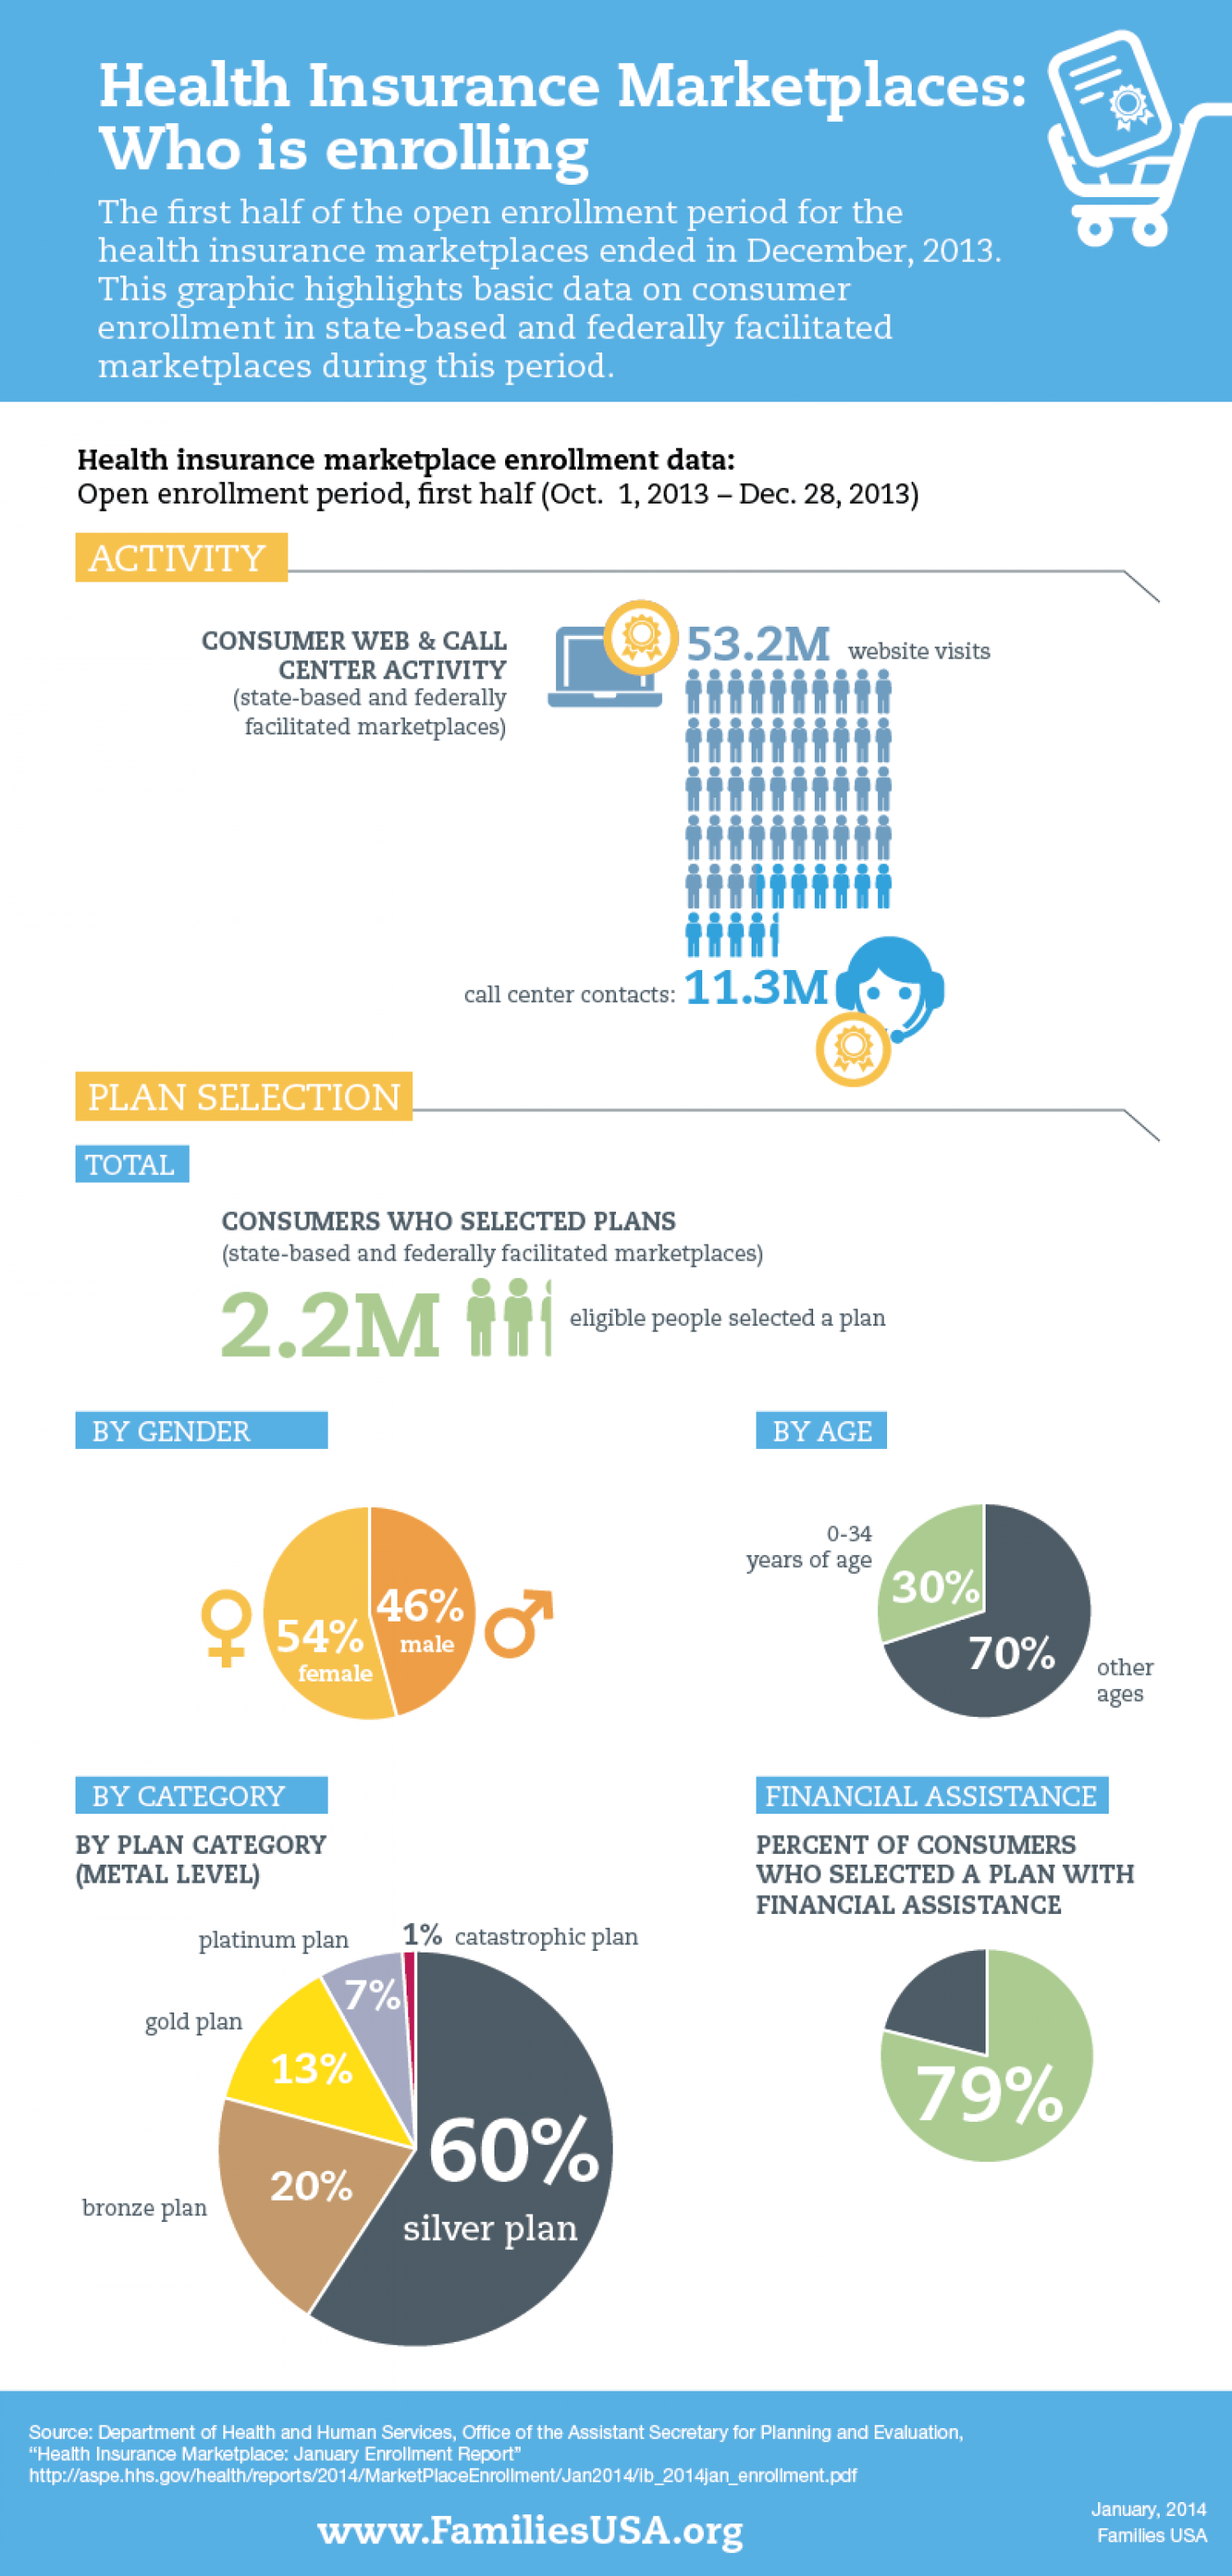 Who is enrolling in the health insurance marketplaces? Infographic